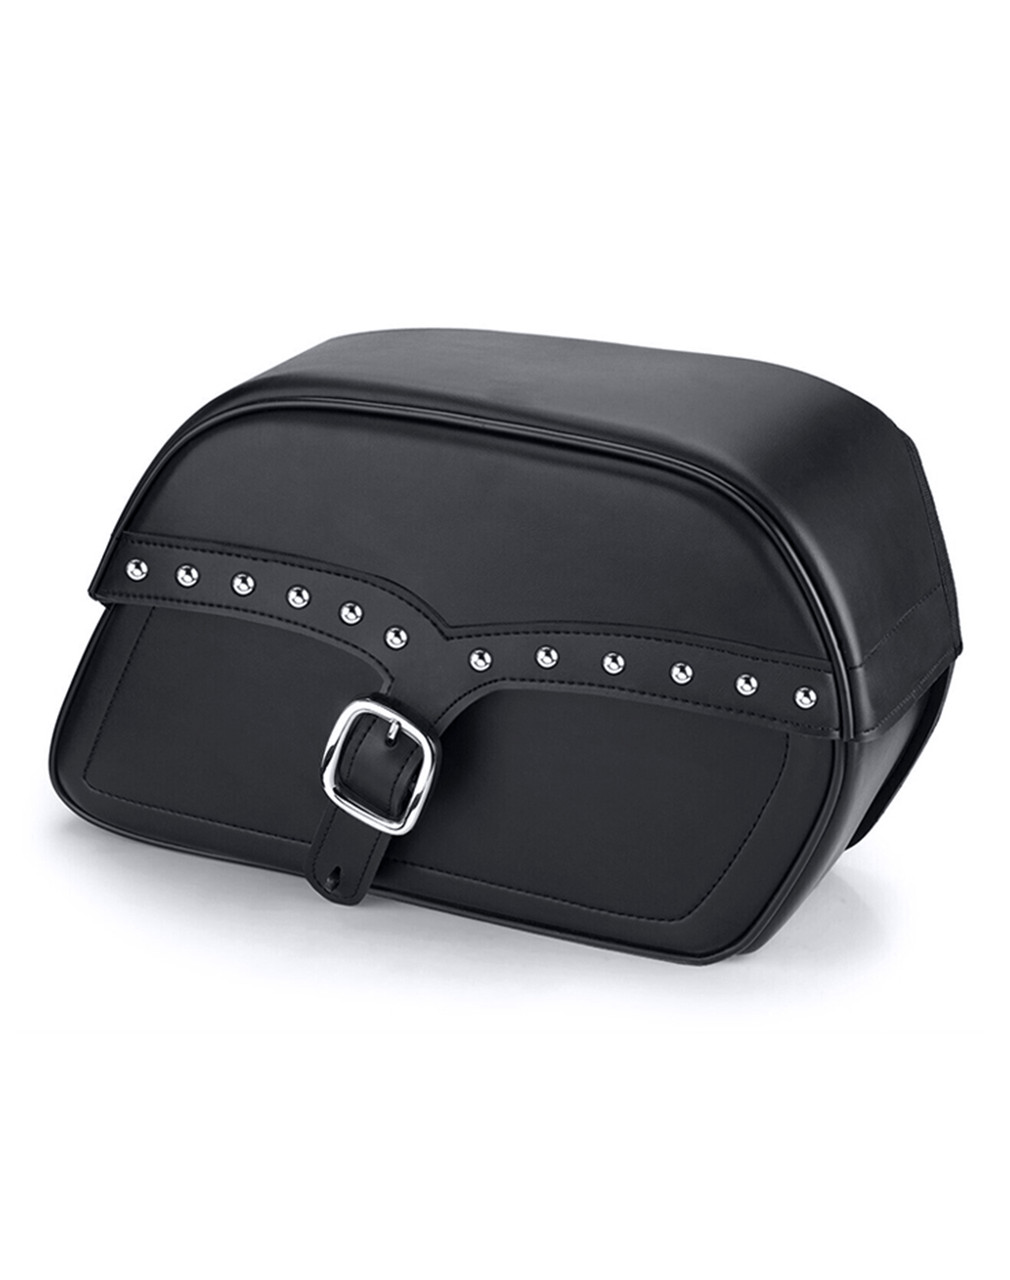 Boulevard C90, VL1500 SS Large Slanted Studded Bags Main View